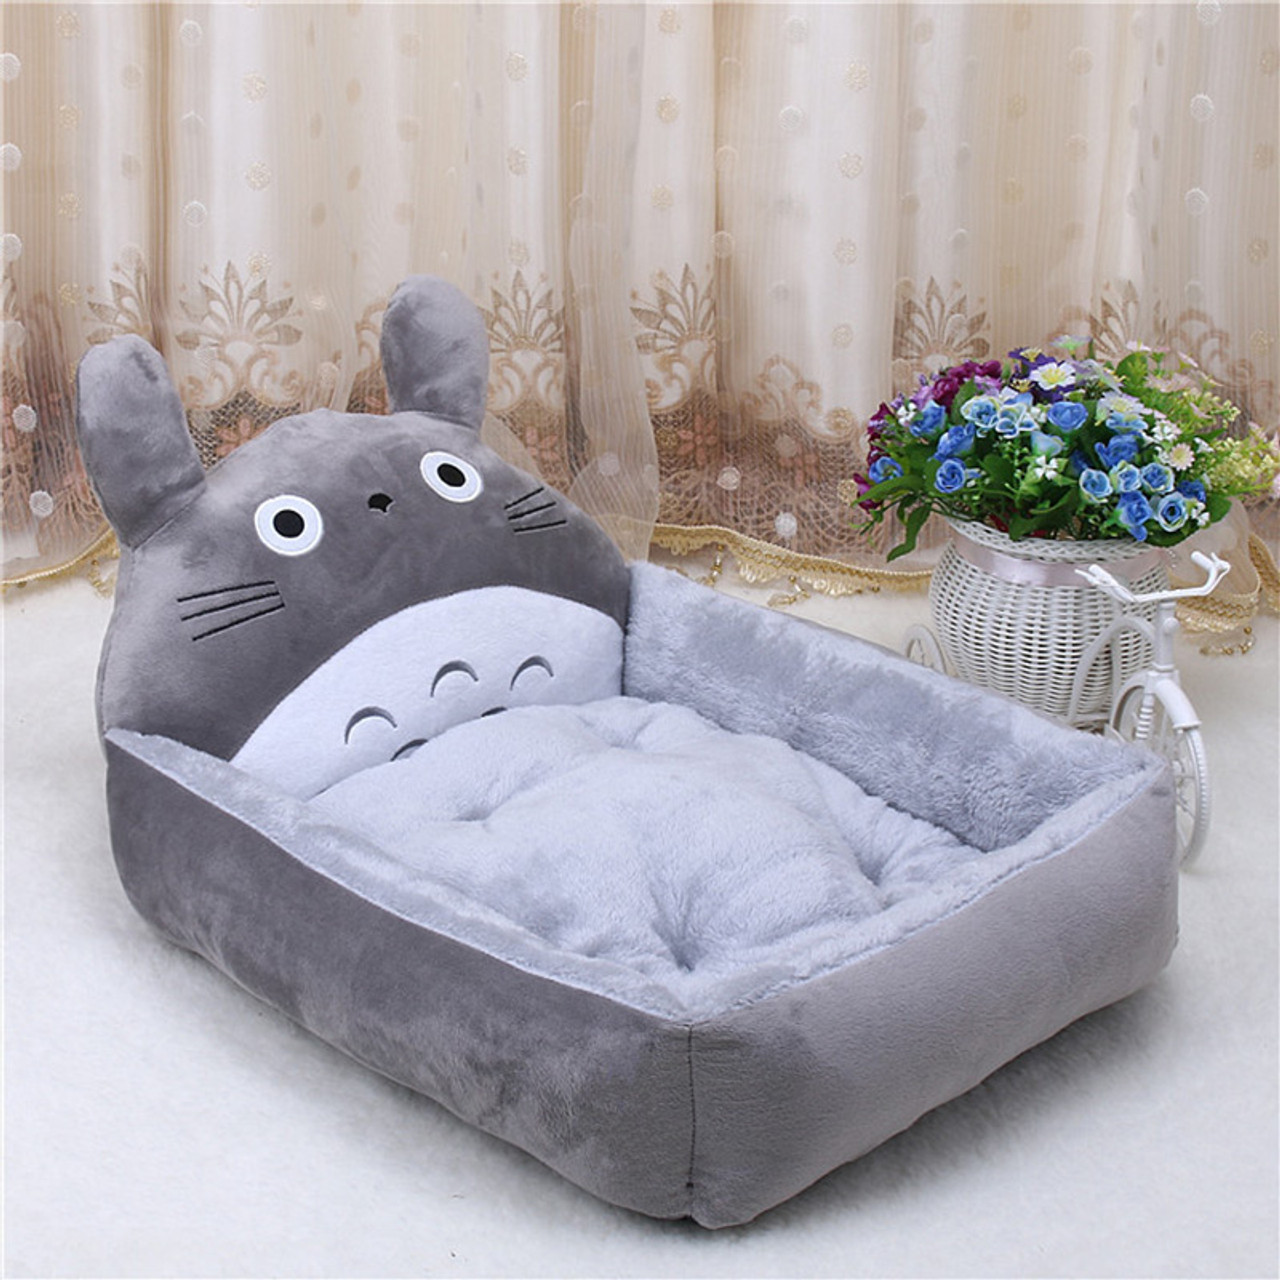 Picture of: Pp Cotton Cute Animal Cartoon Shaped Warming Cat House Dog Beds Big Blanket Supplies Dog Bed